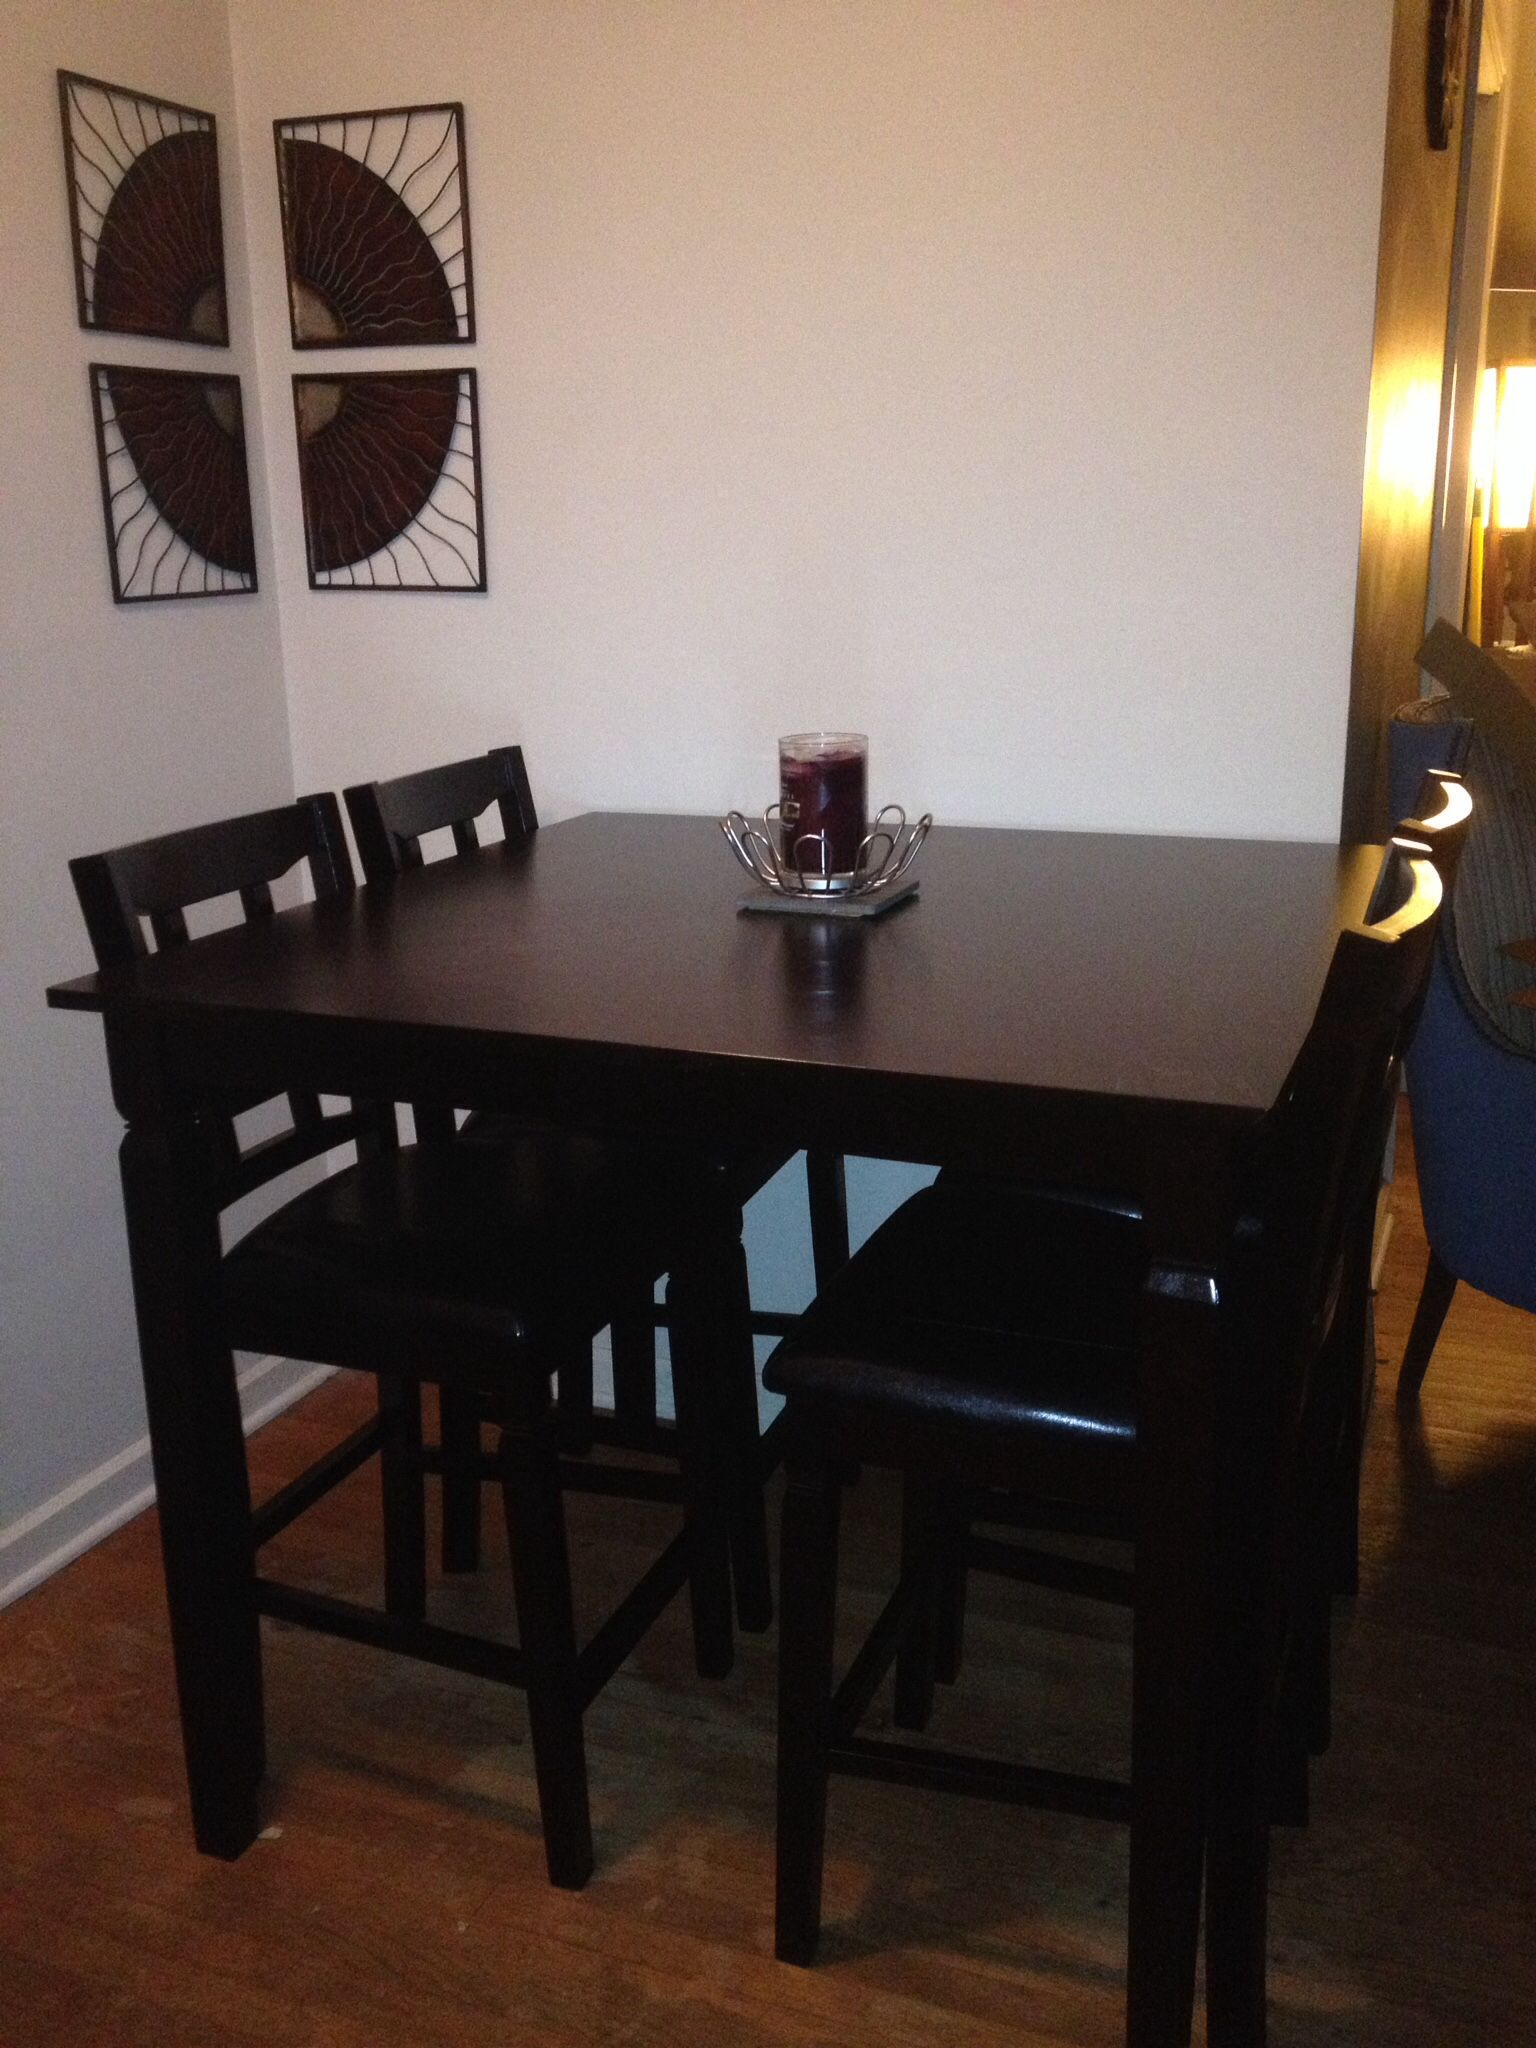 Big Lots Kitchen Table Sets Espresso Pub Table And Chairs From Big Lots Works Great In Our